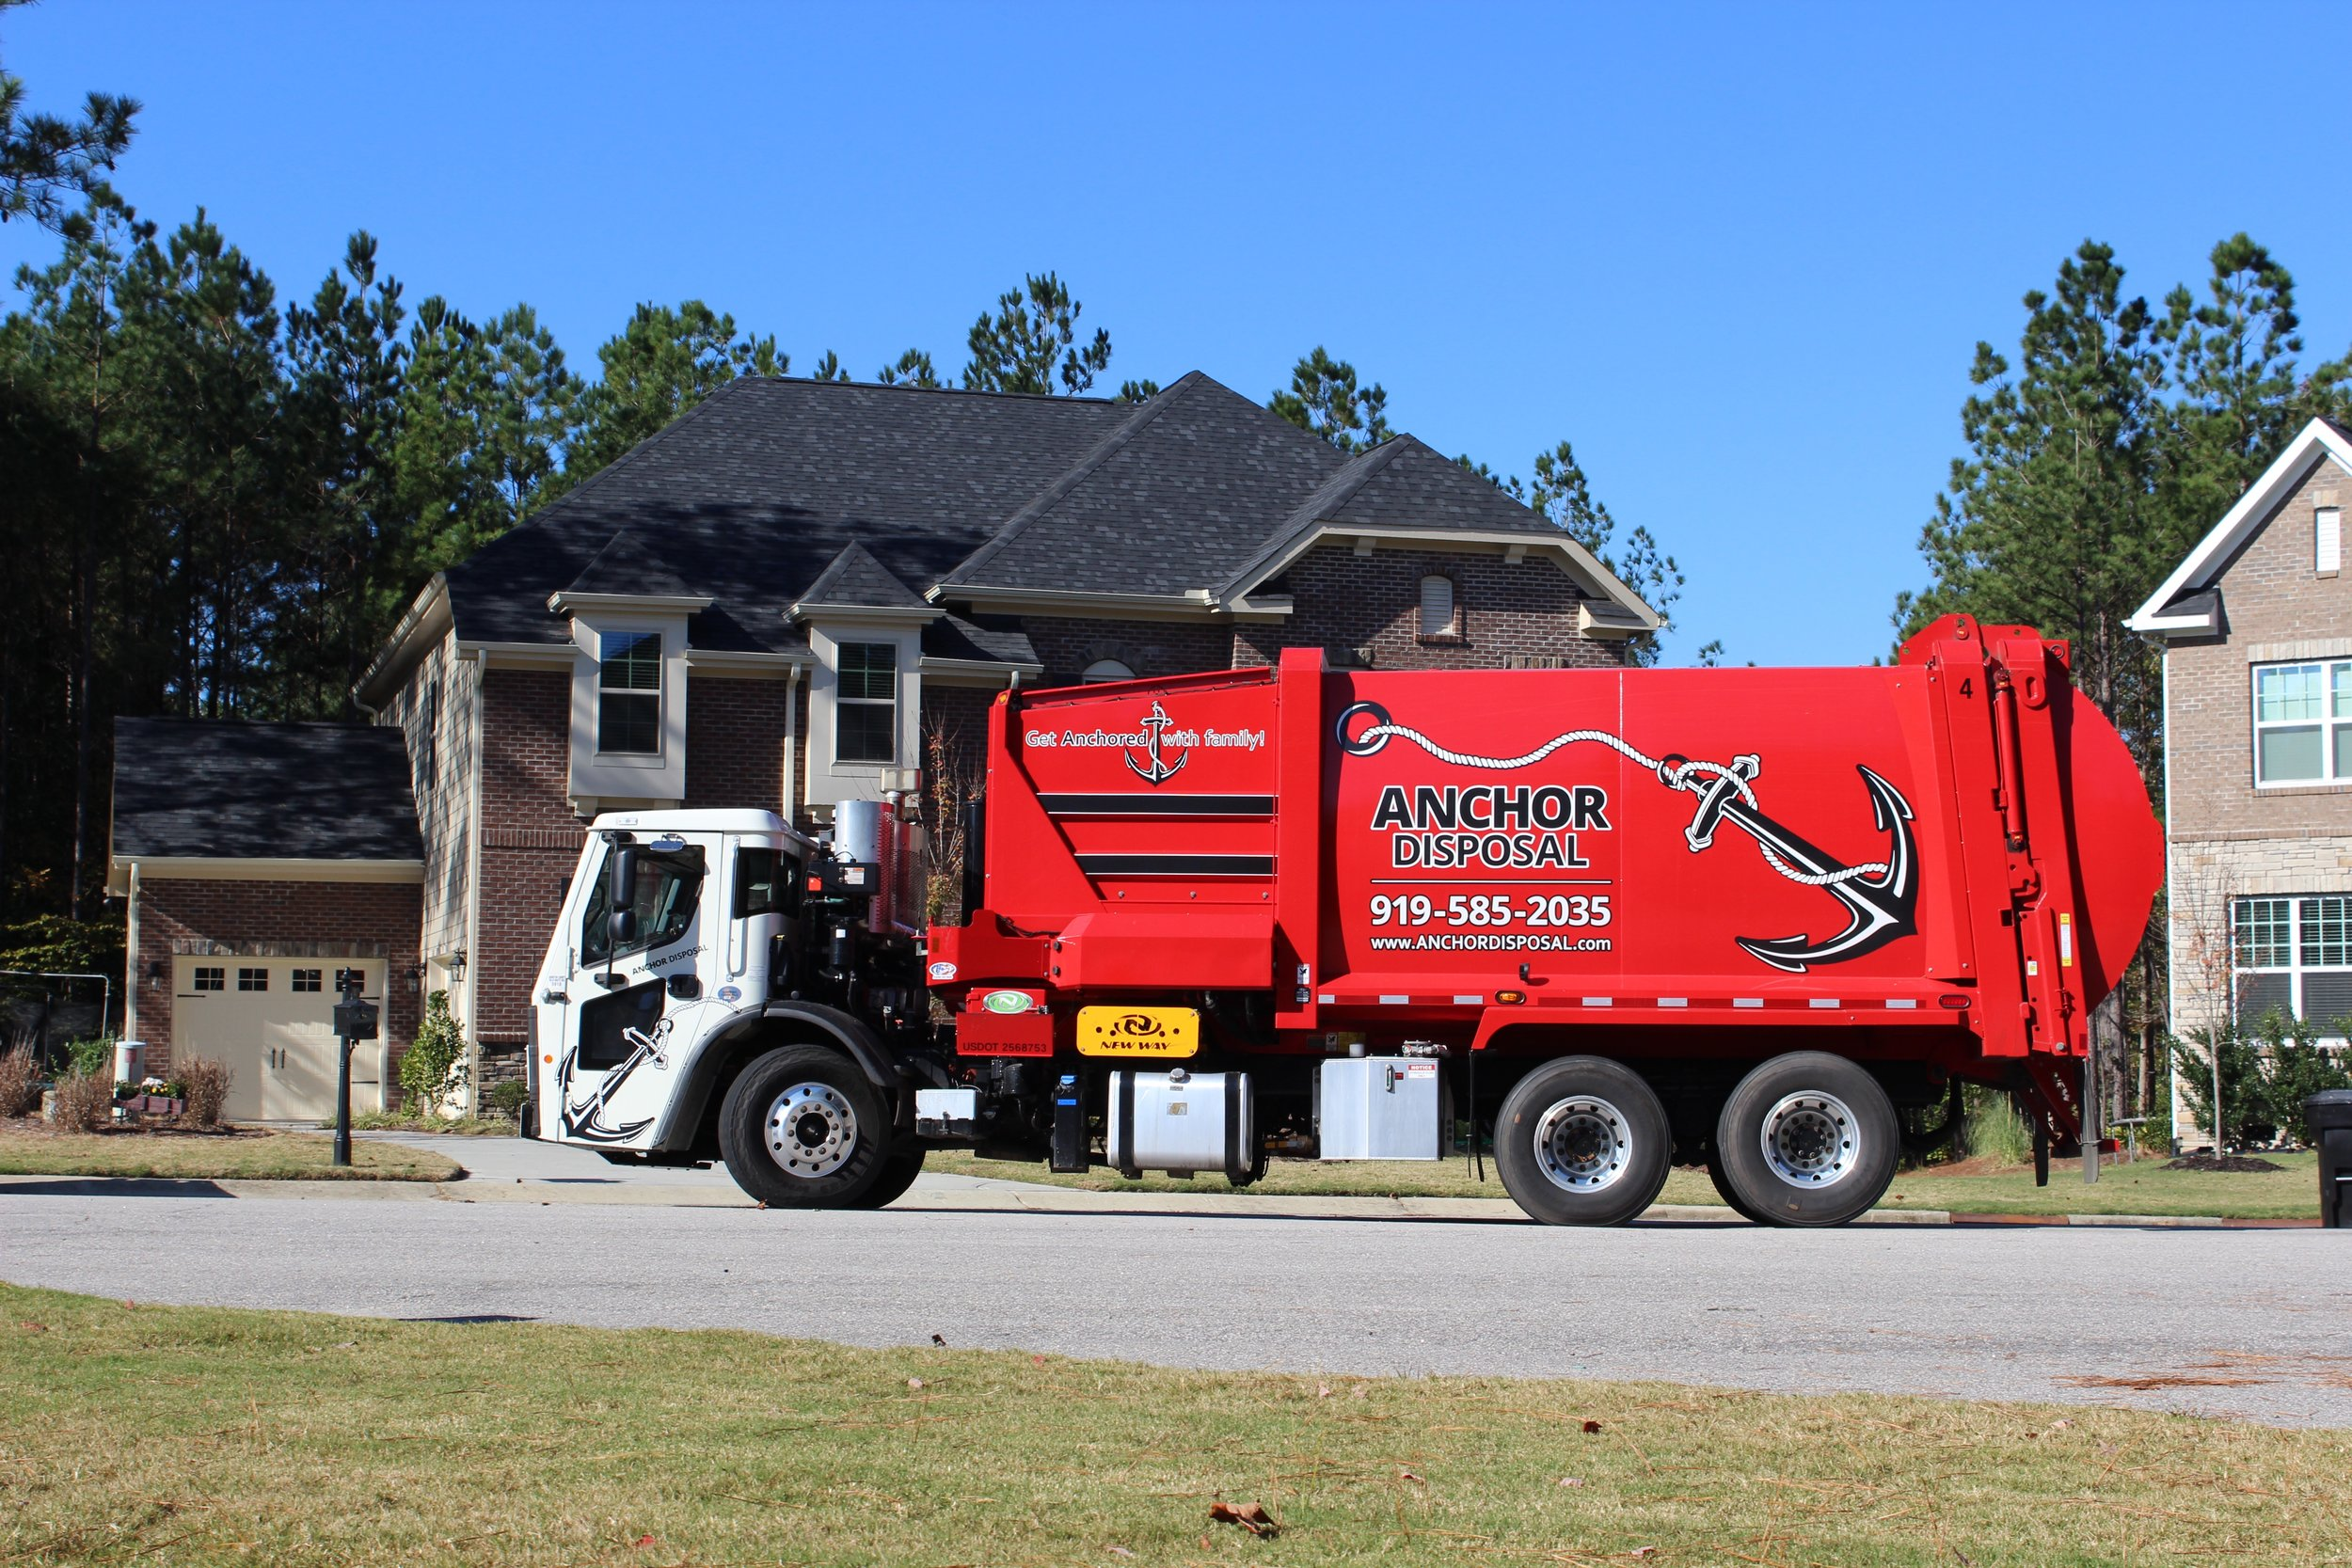 Residential Trash Pick-Up   919-585-2035    Contact Us